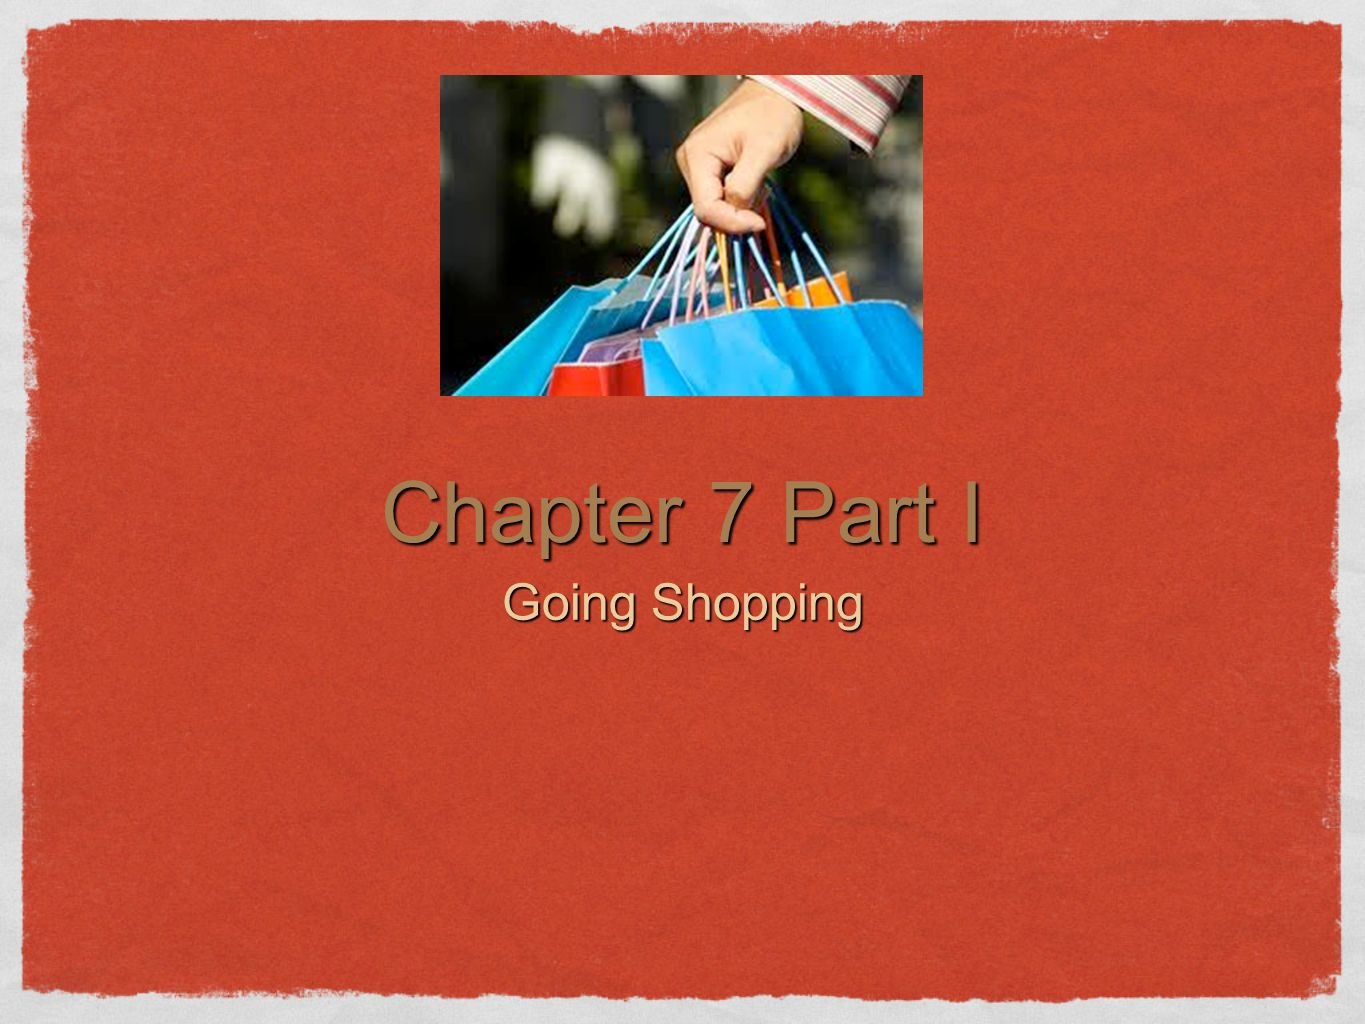 Chapter 7 Part I Going Shopping